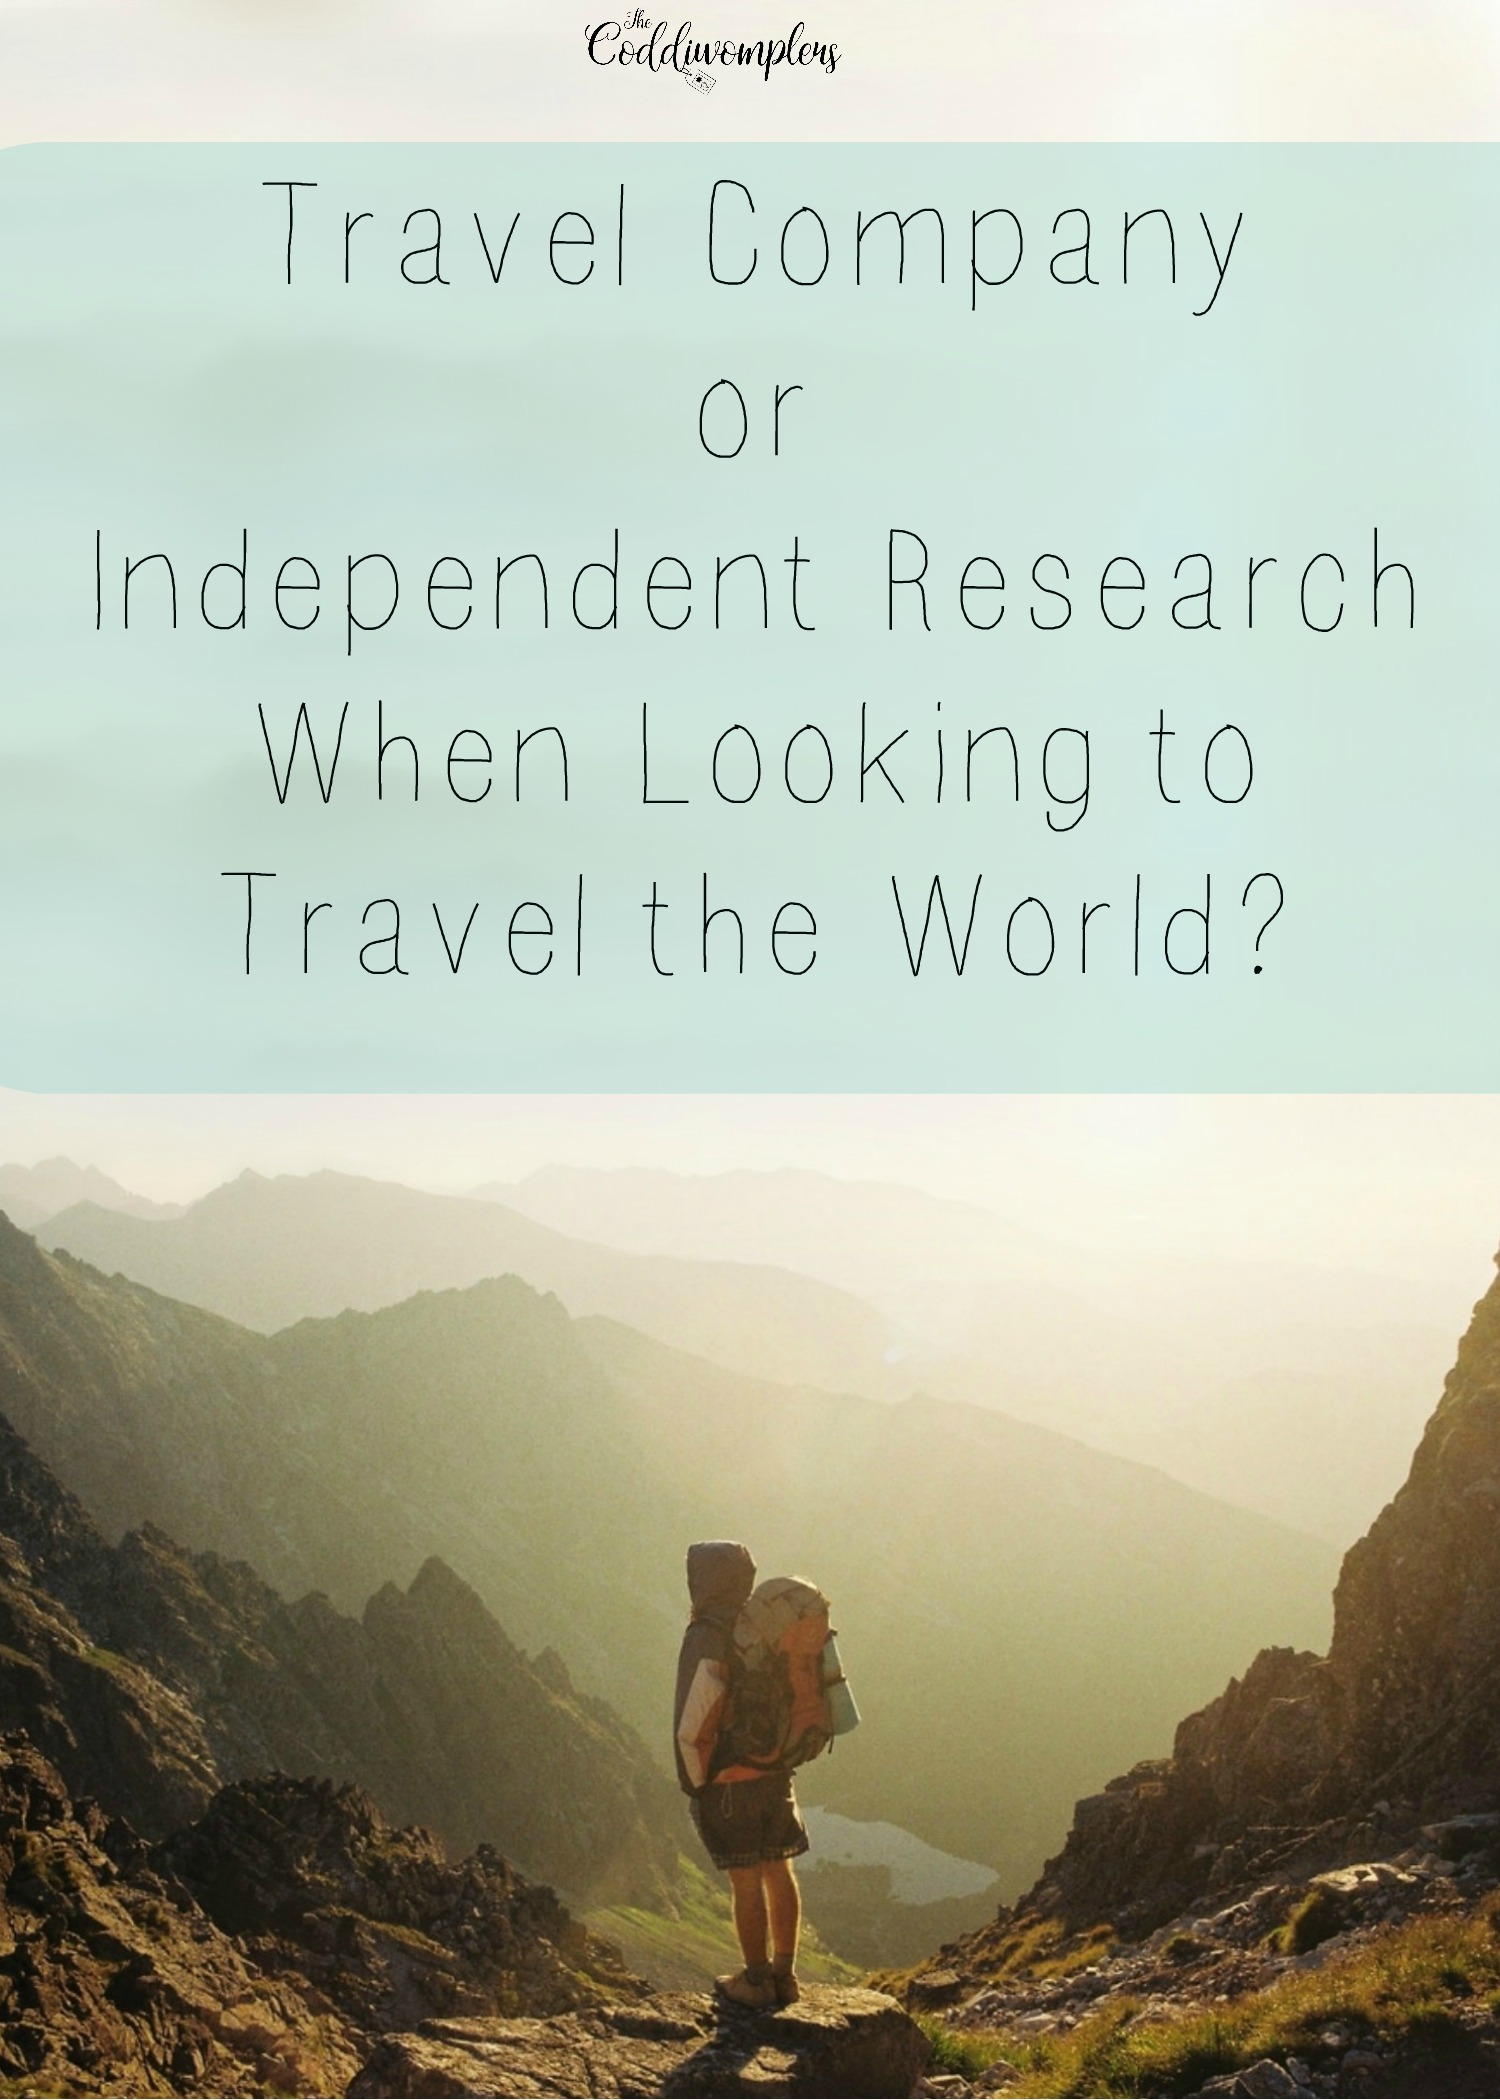 Travel Company or Independent Research When Looking to Travel the World